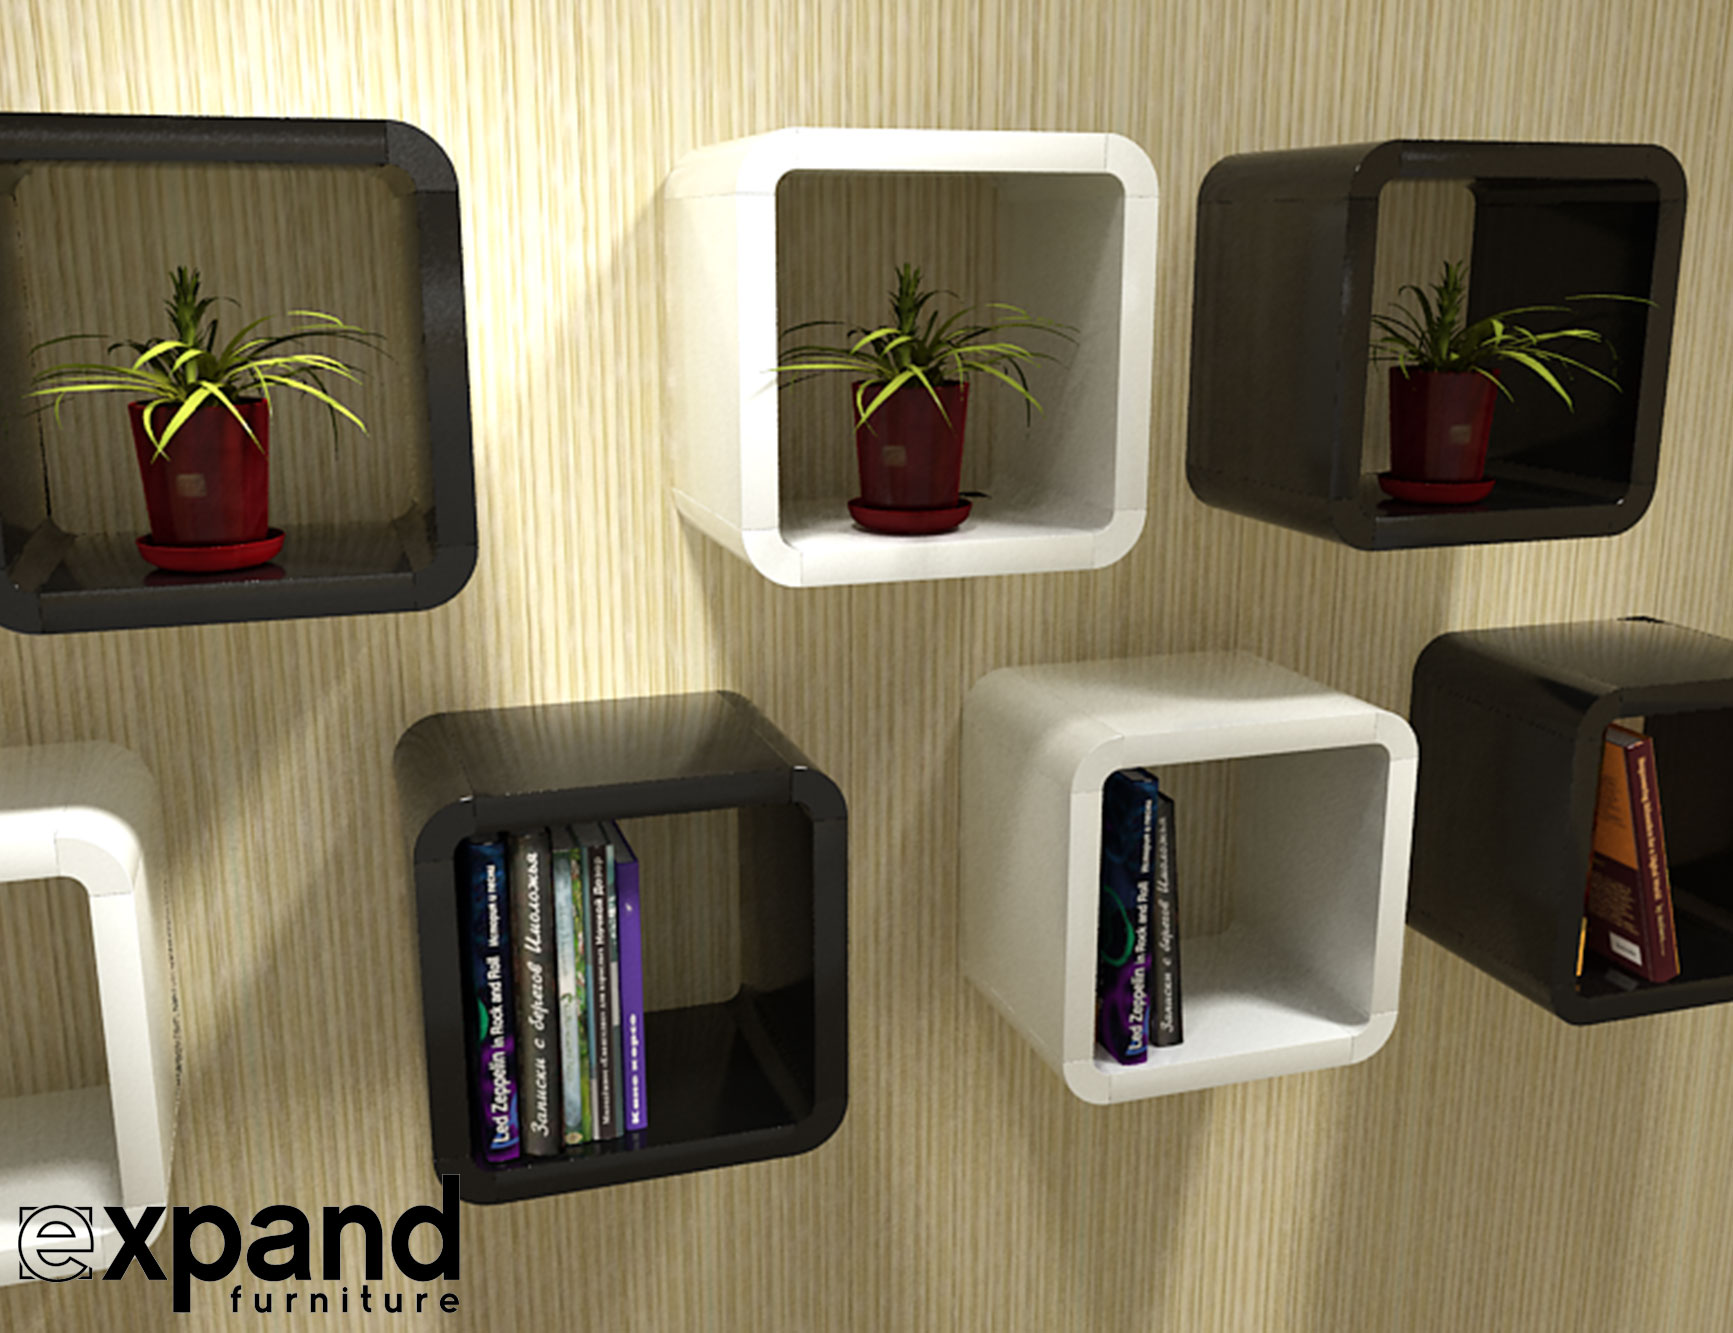 Innovative Cube Wall Shelves Shelves By Expand Furniture Storage Wall Shelving Systems Cube Wall Shelves Australia Cube Wall Shelves Nz houzz-03 Cube Wall Shelves